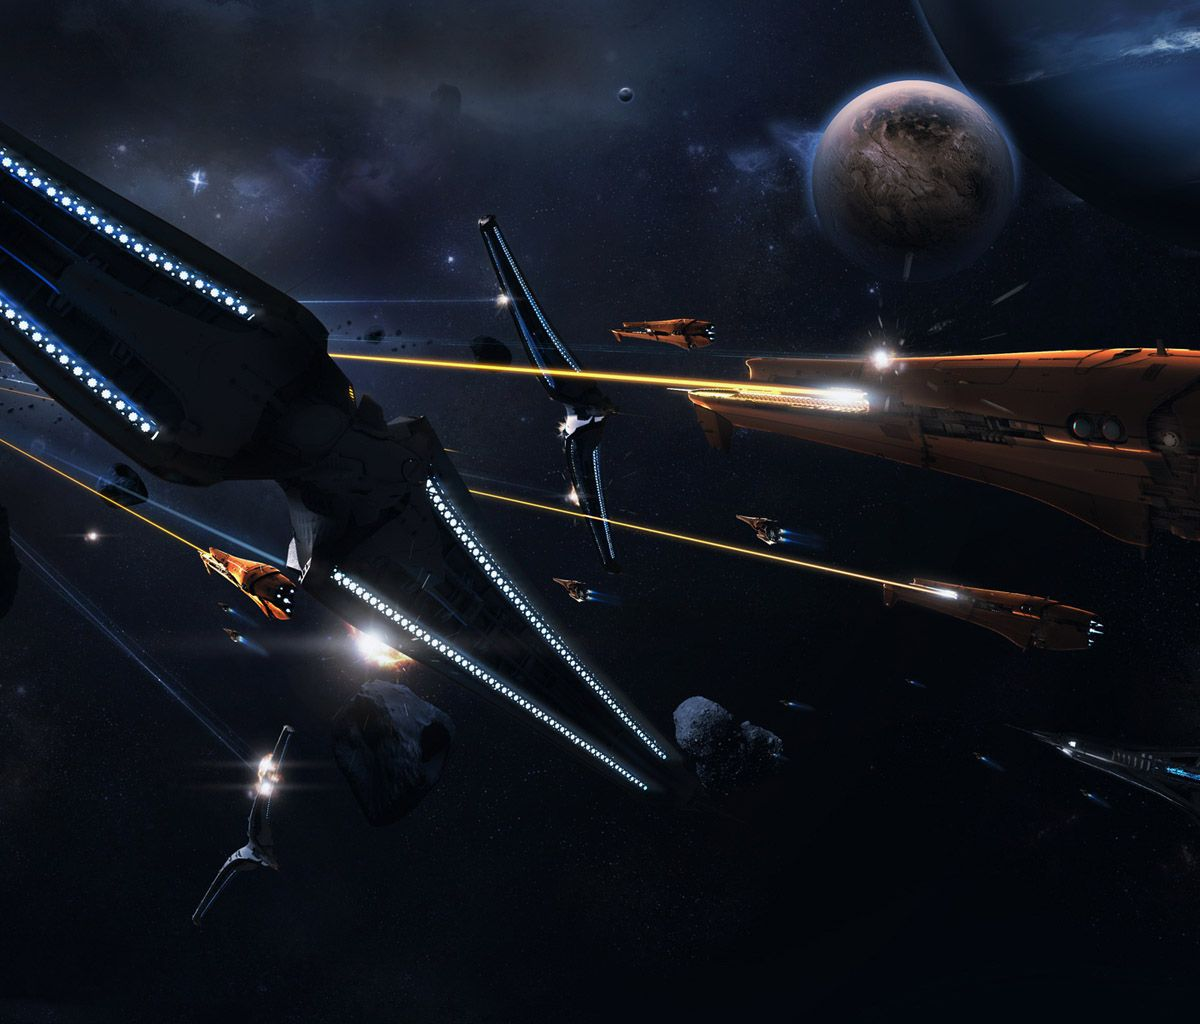 Pin by Daniel James Soto on Fictional Art Concept ships